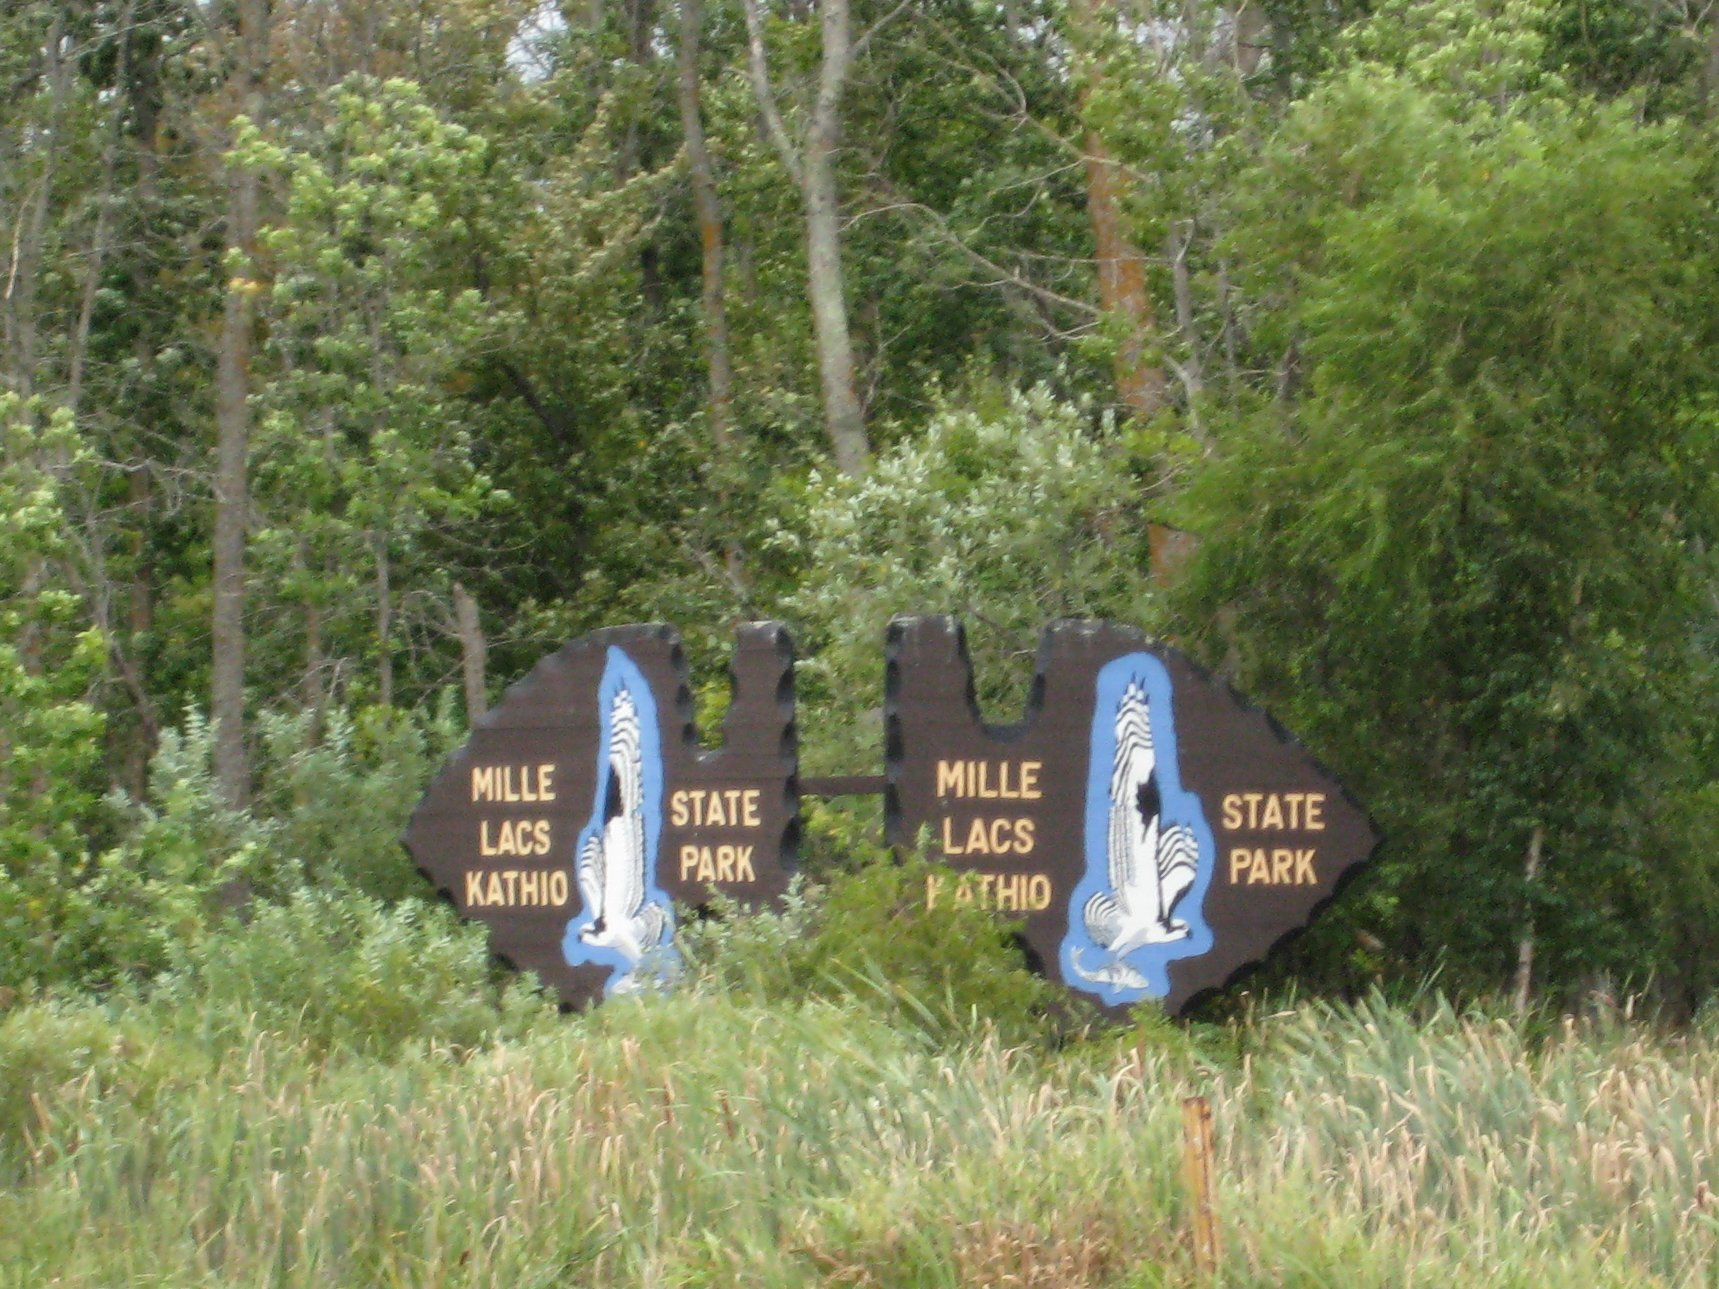 file mille lacs kathio state park sign jpg wikimedia commons rh commons wikimedia org mille lacs kathio state park reservations mille lacs kathio state park onamia